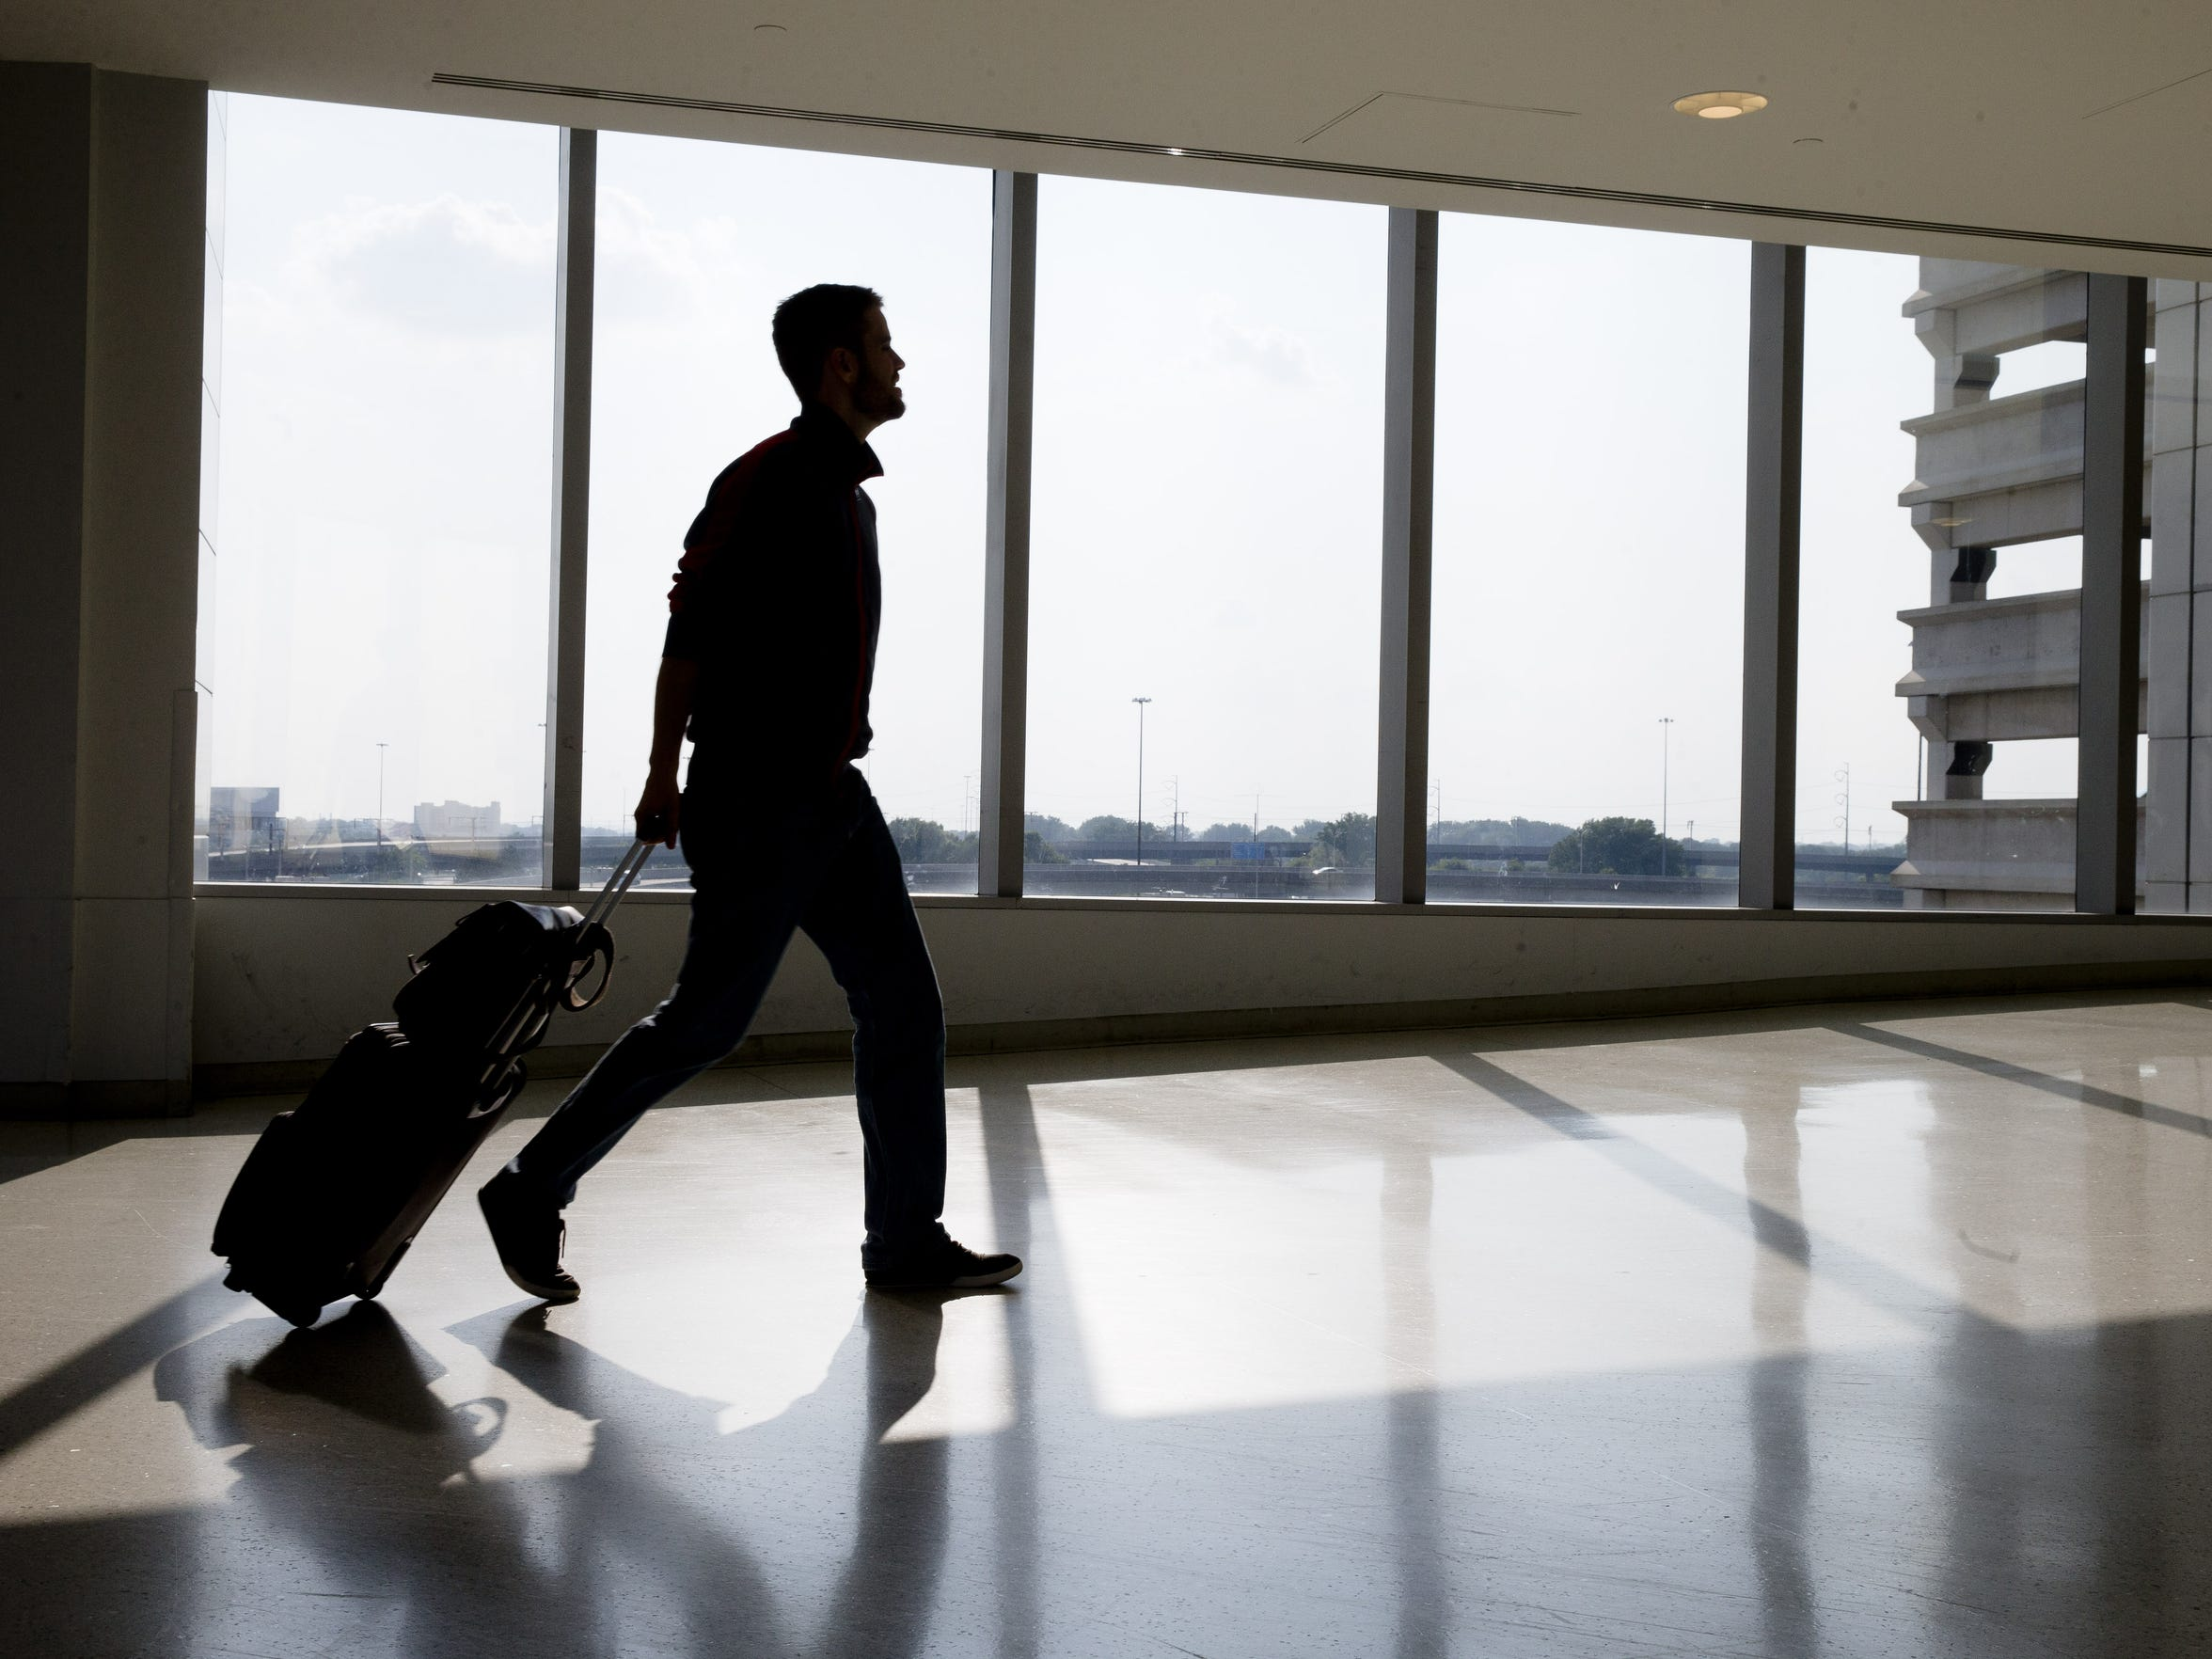 A traveler passes through Philadelphia International Airport on July 31, 2014. Officials are considering a plan that would expand rail service to the airport.